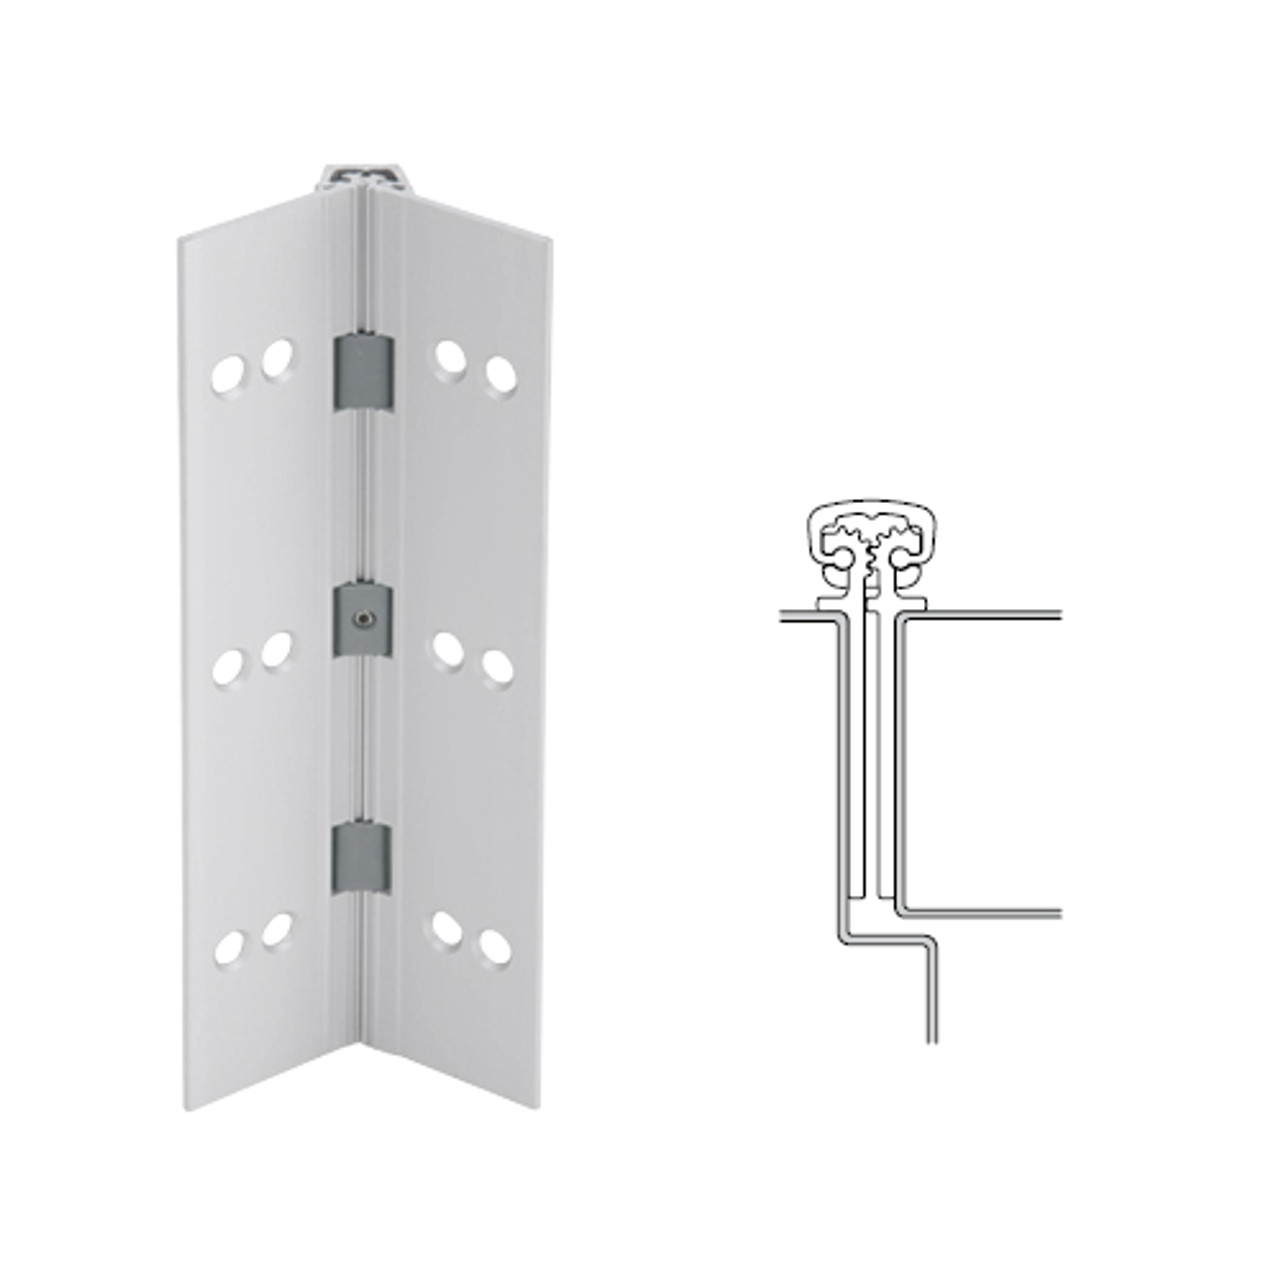 027XY-US28-95-WD IVES Full Mortise Continuous Geared Hinges with Wood Screws in Satin Aluminum